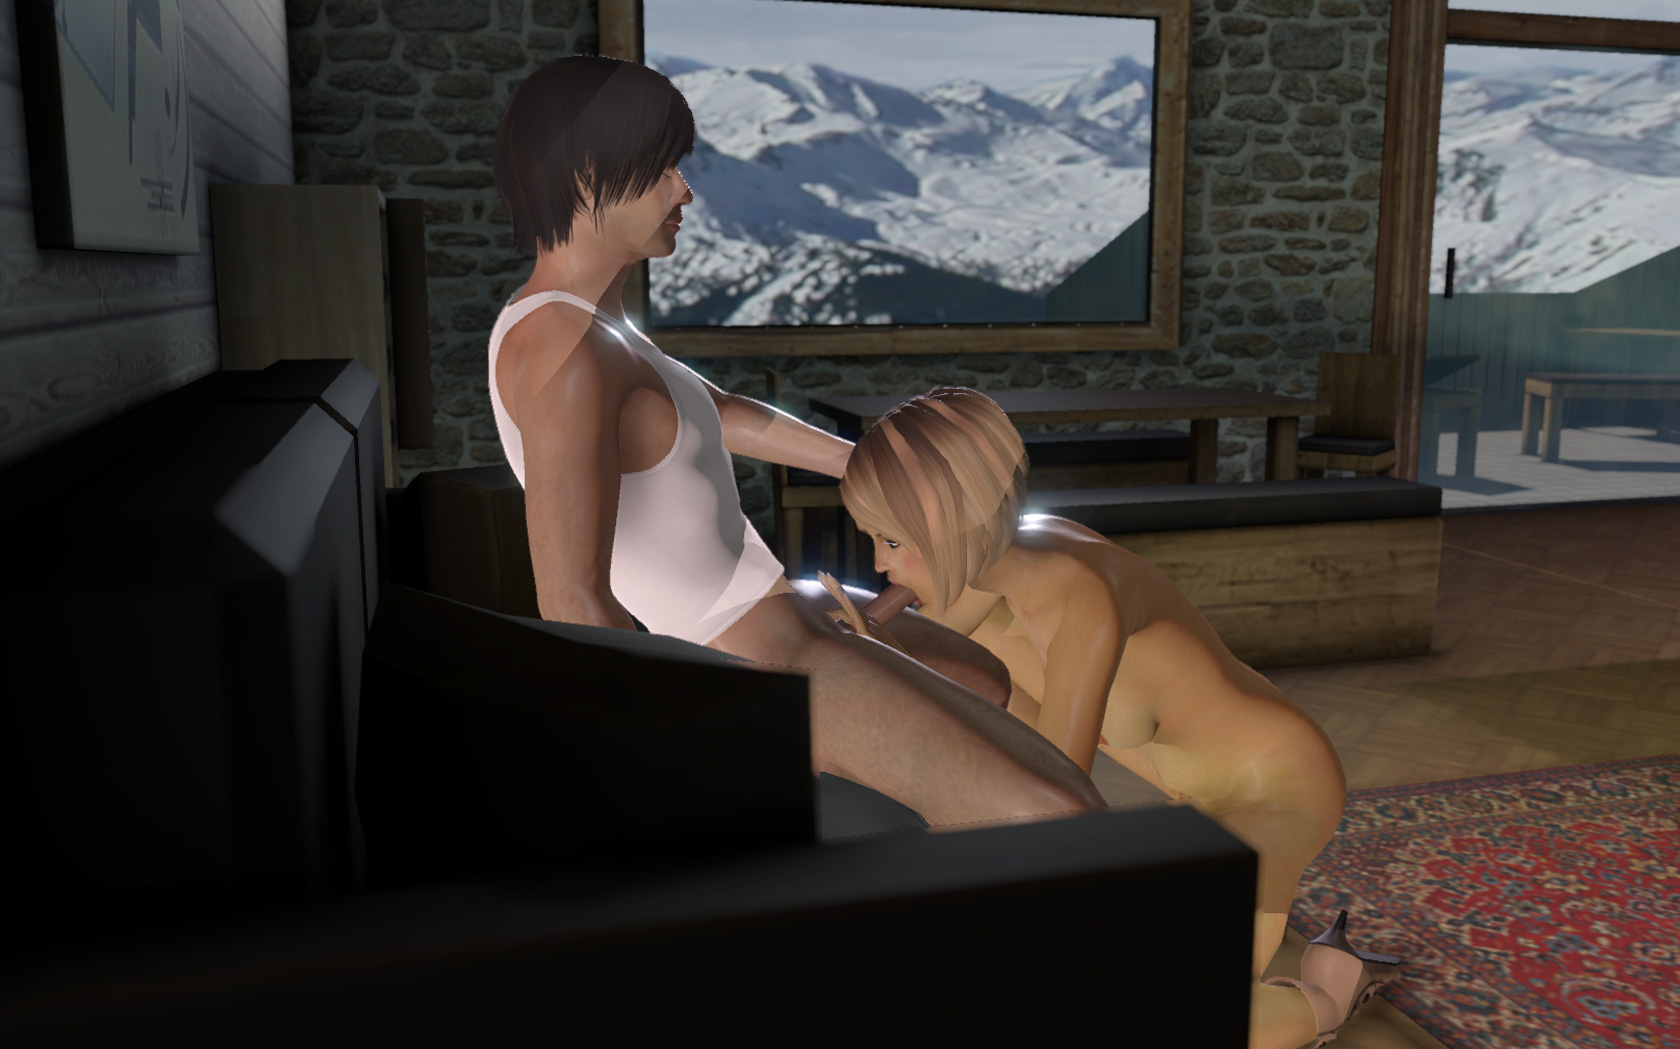 sadistic-sex-simulation-software